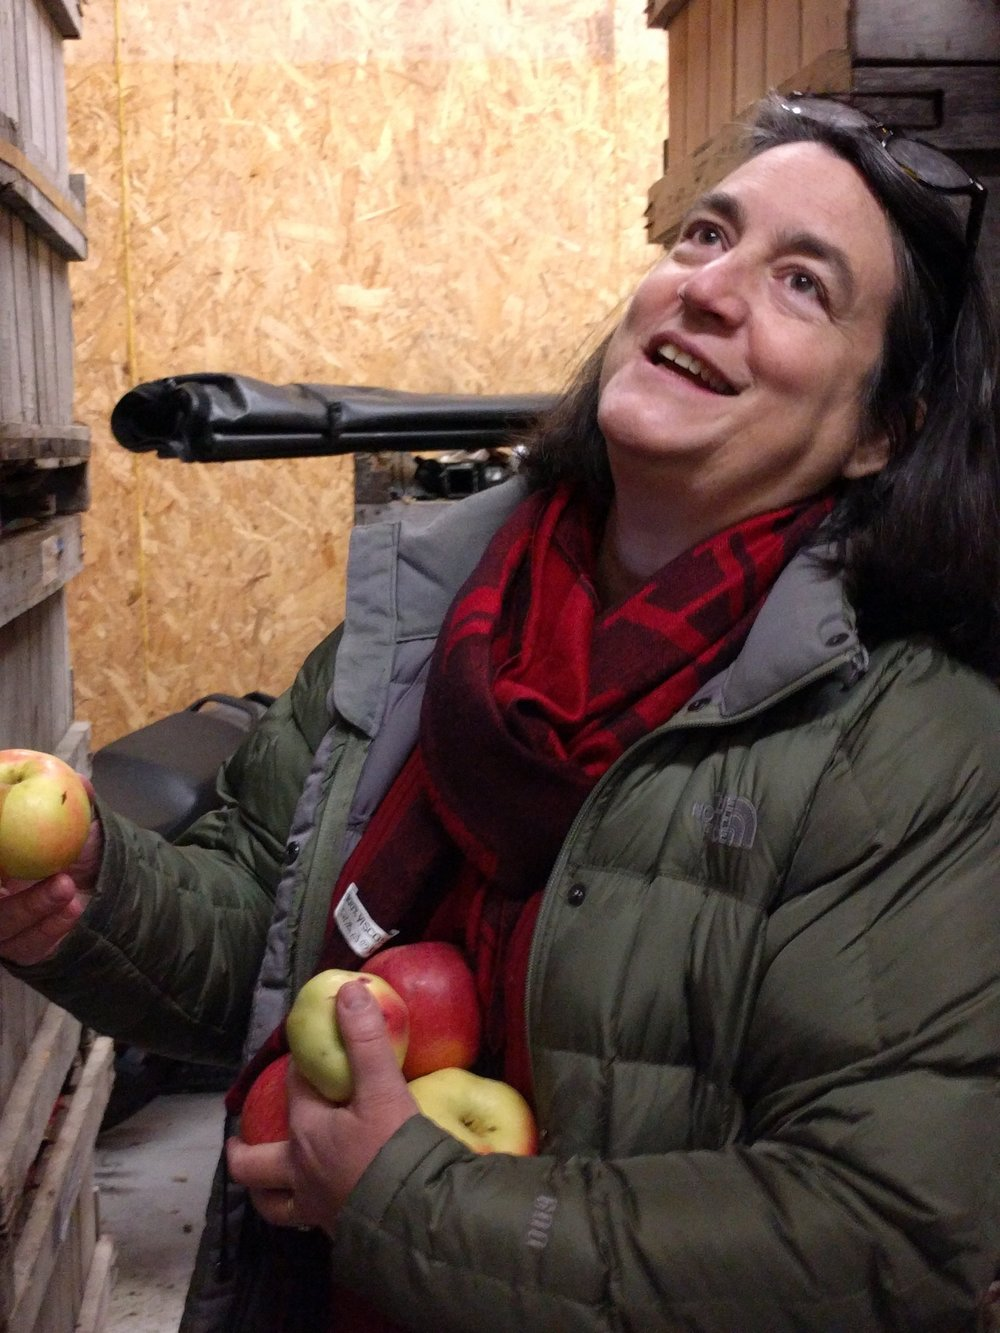 Eden Ciders  Founder Eleanor Léger, aka  @appleellie , shared an abundance of ciders from her cellar, including the limited run Cinderella's Slipper, of which only six cases remain. Audio tasting notes are from our  orchard visit in D  ecember 2016